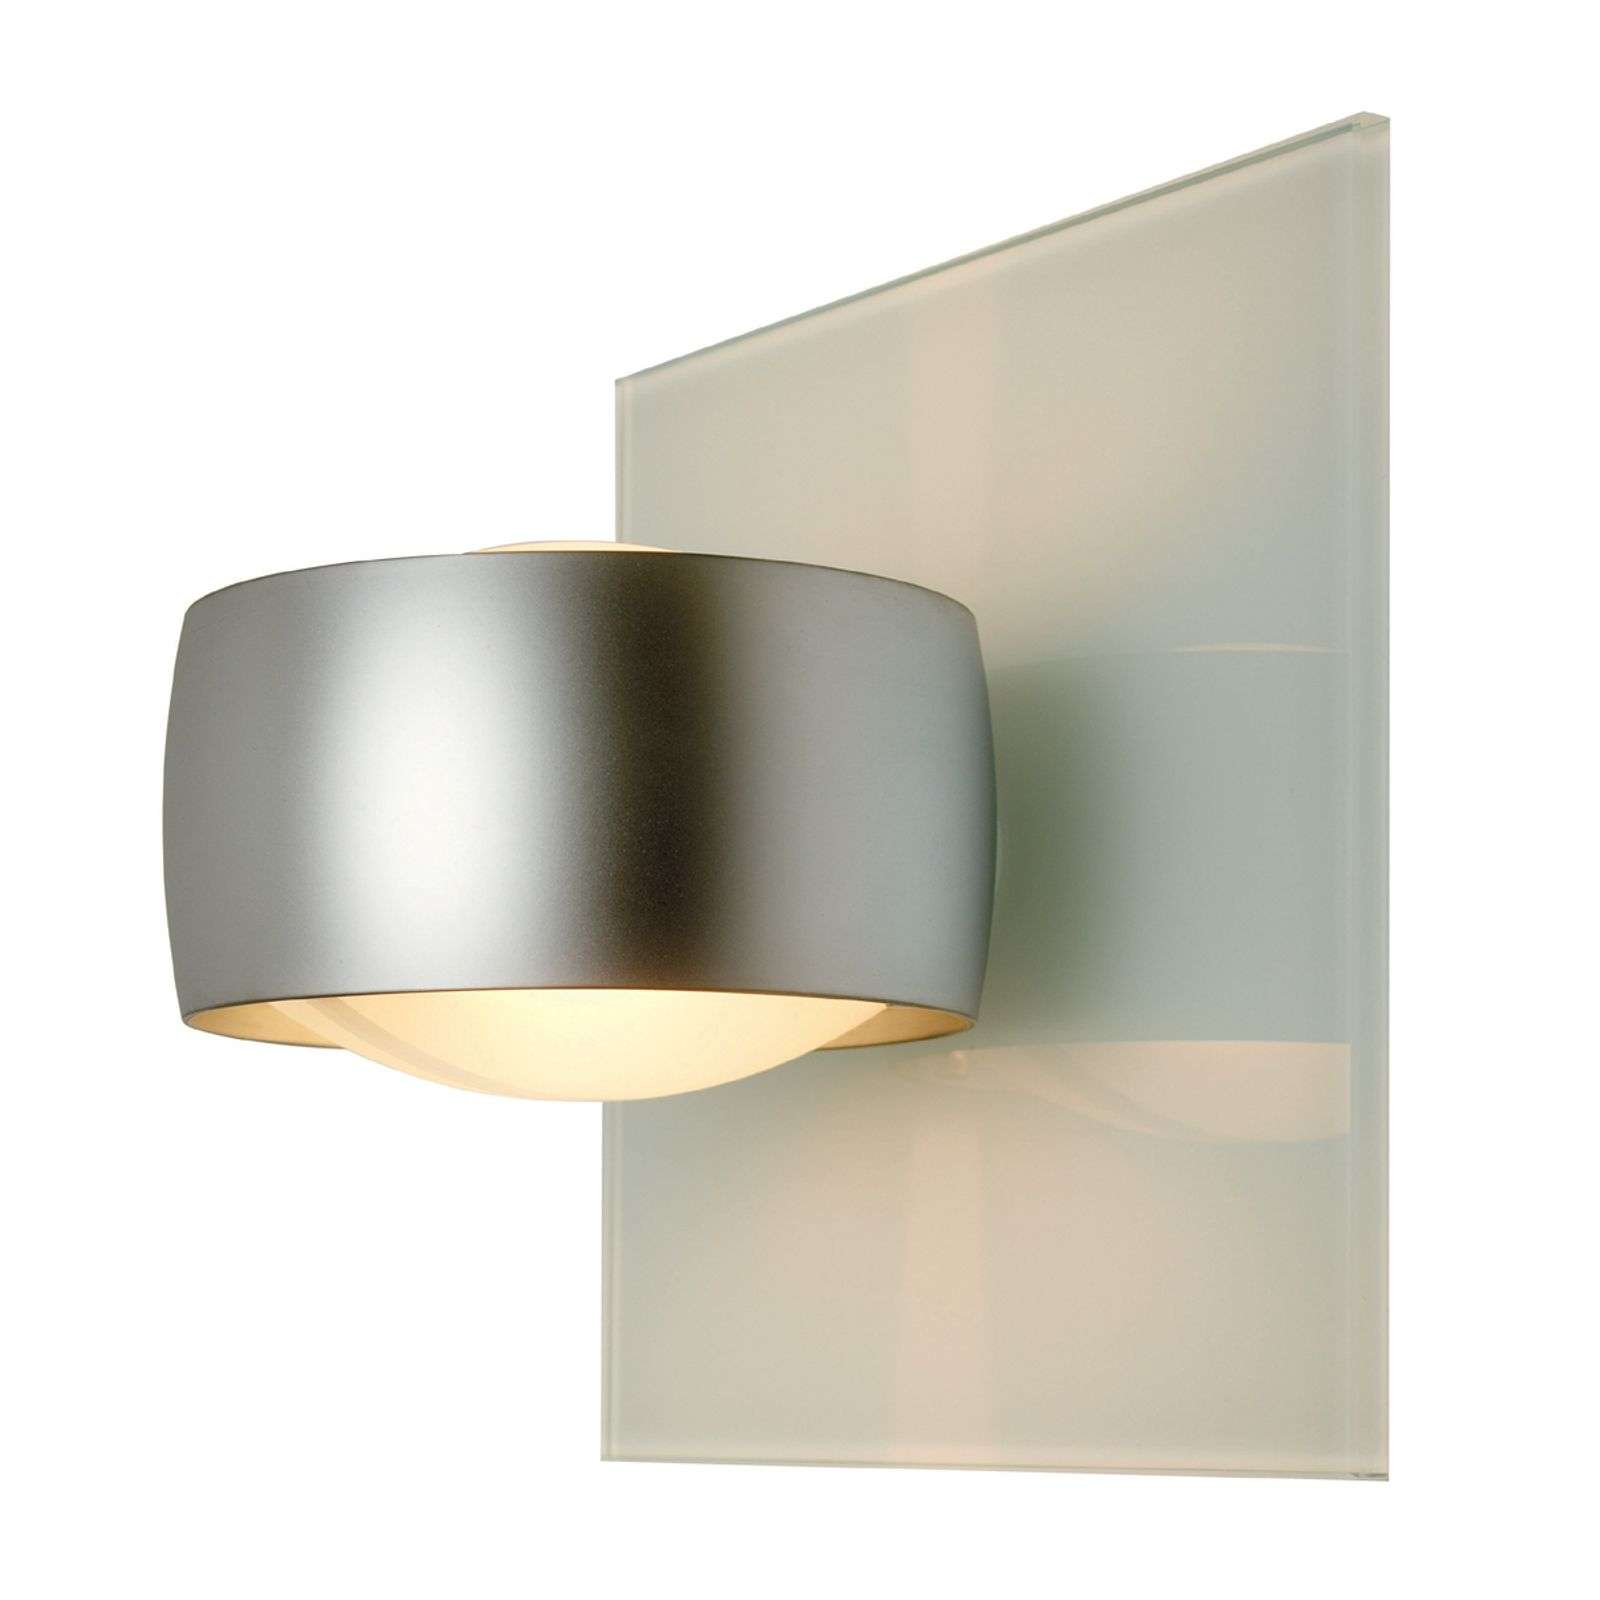 Decoratieve wandlamp GRACE UNLIMITED, wit zilver m